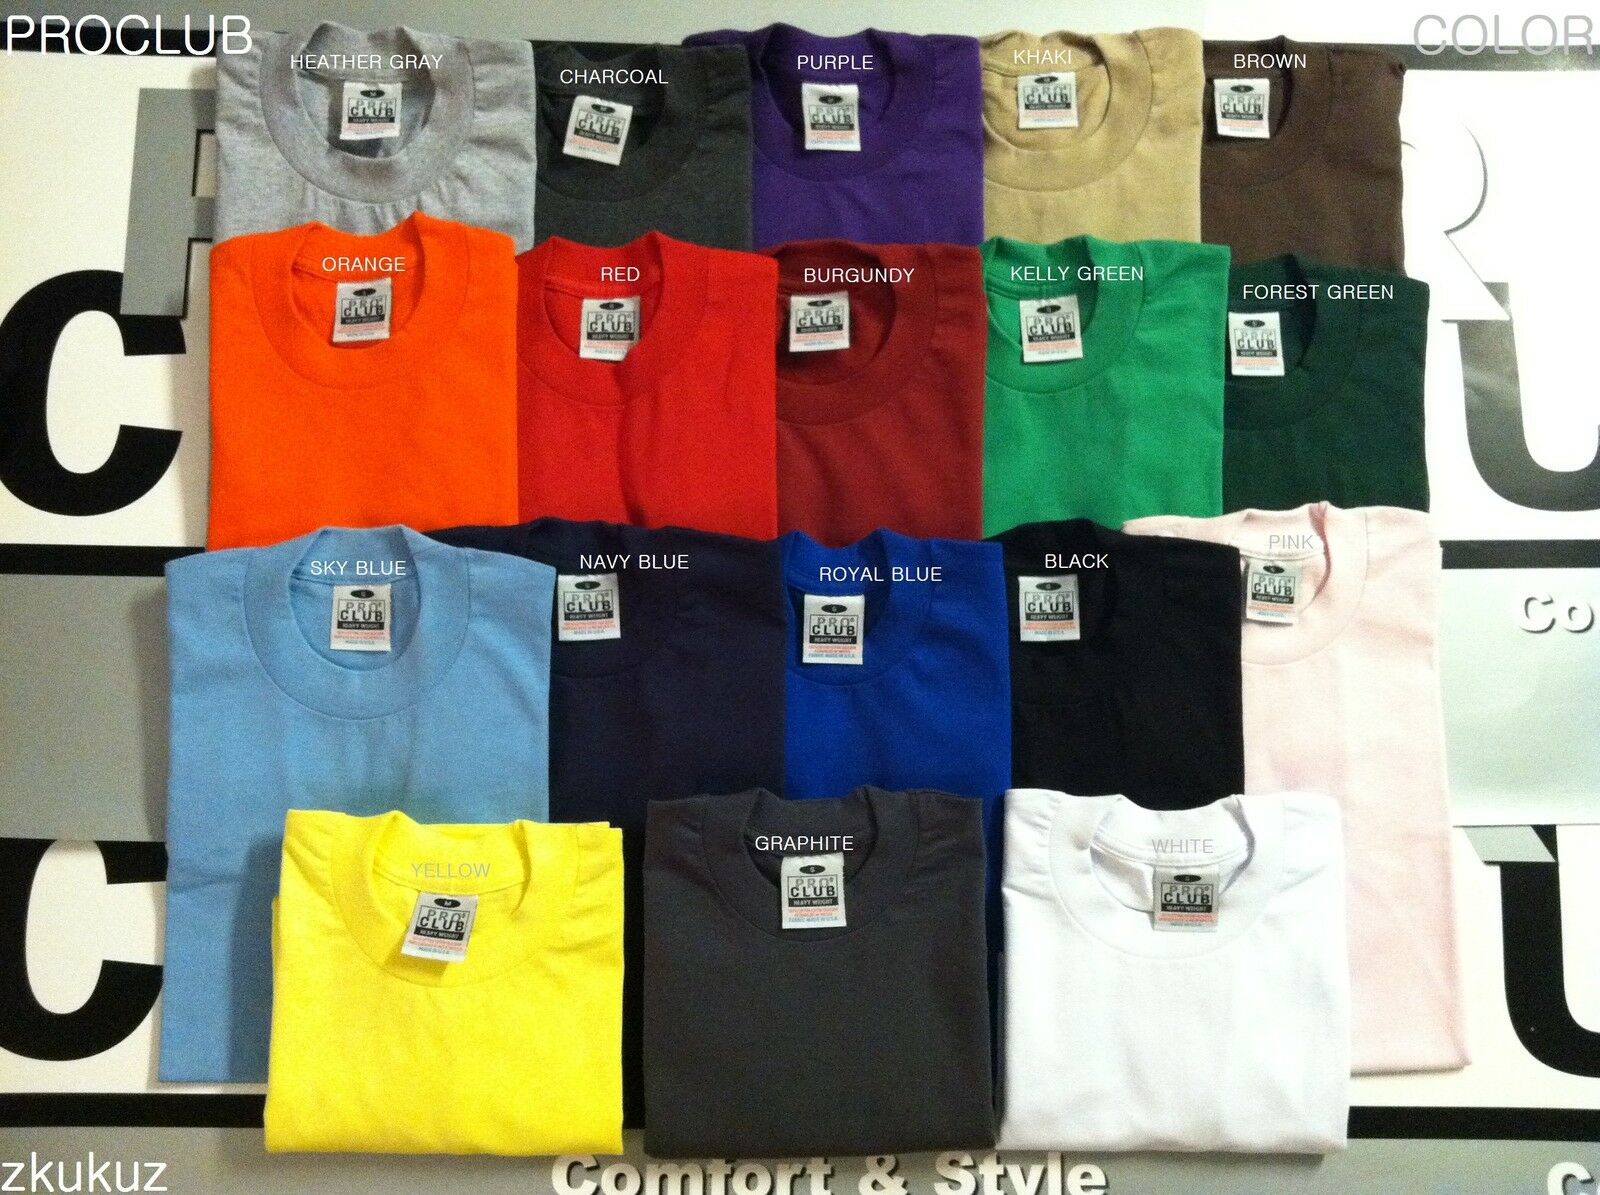 12 NEW PROCLUB HEAVY WEIGHT T-SHIRT 12PC COLOR PLAIN PRO CLUB TEE BLANK 5XL 12PC T-SHIRT ed4b7f